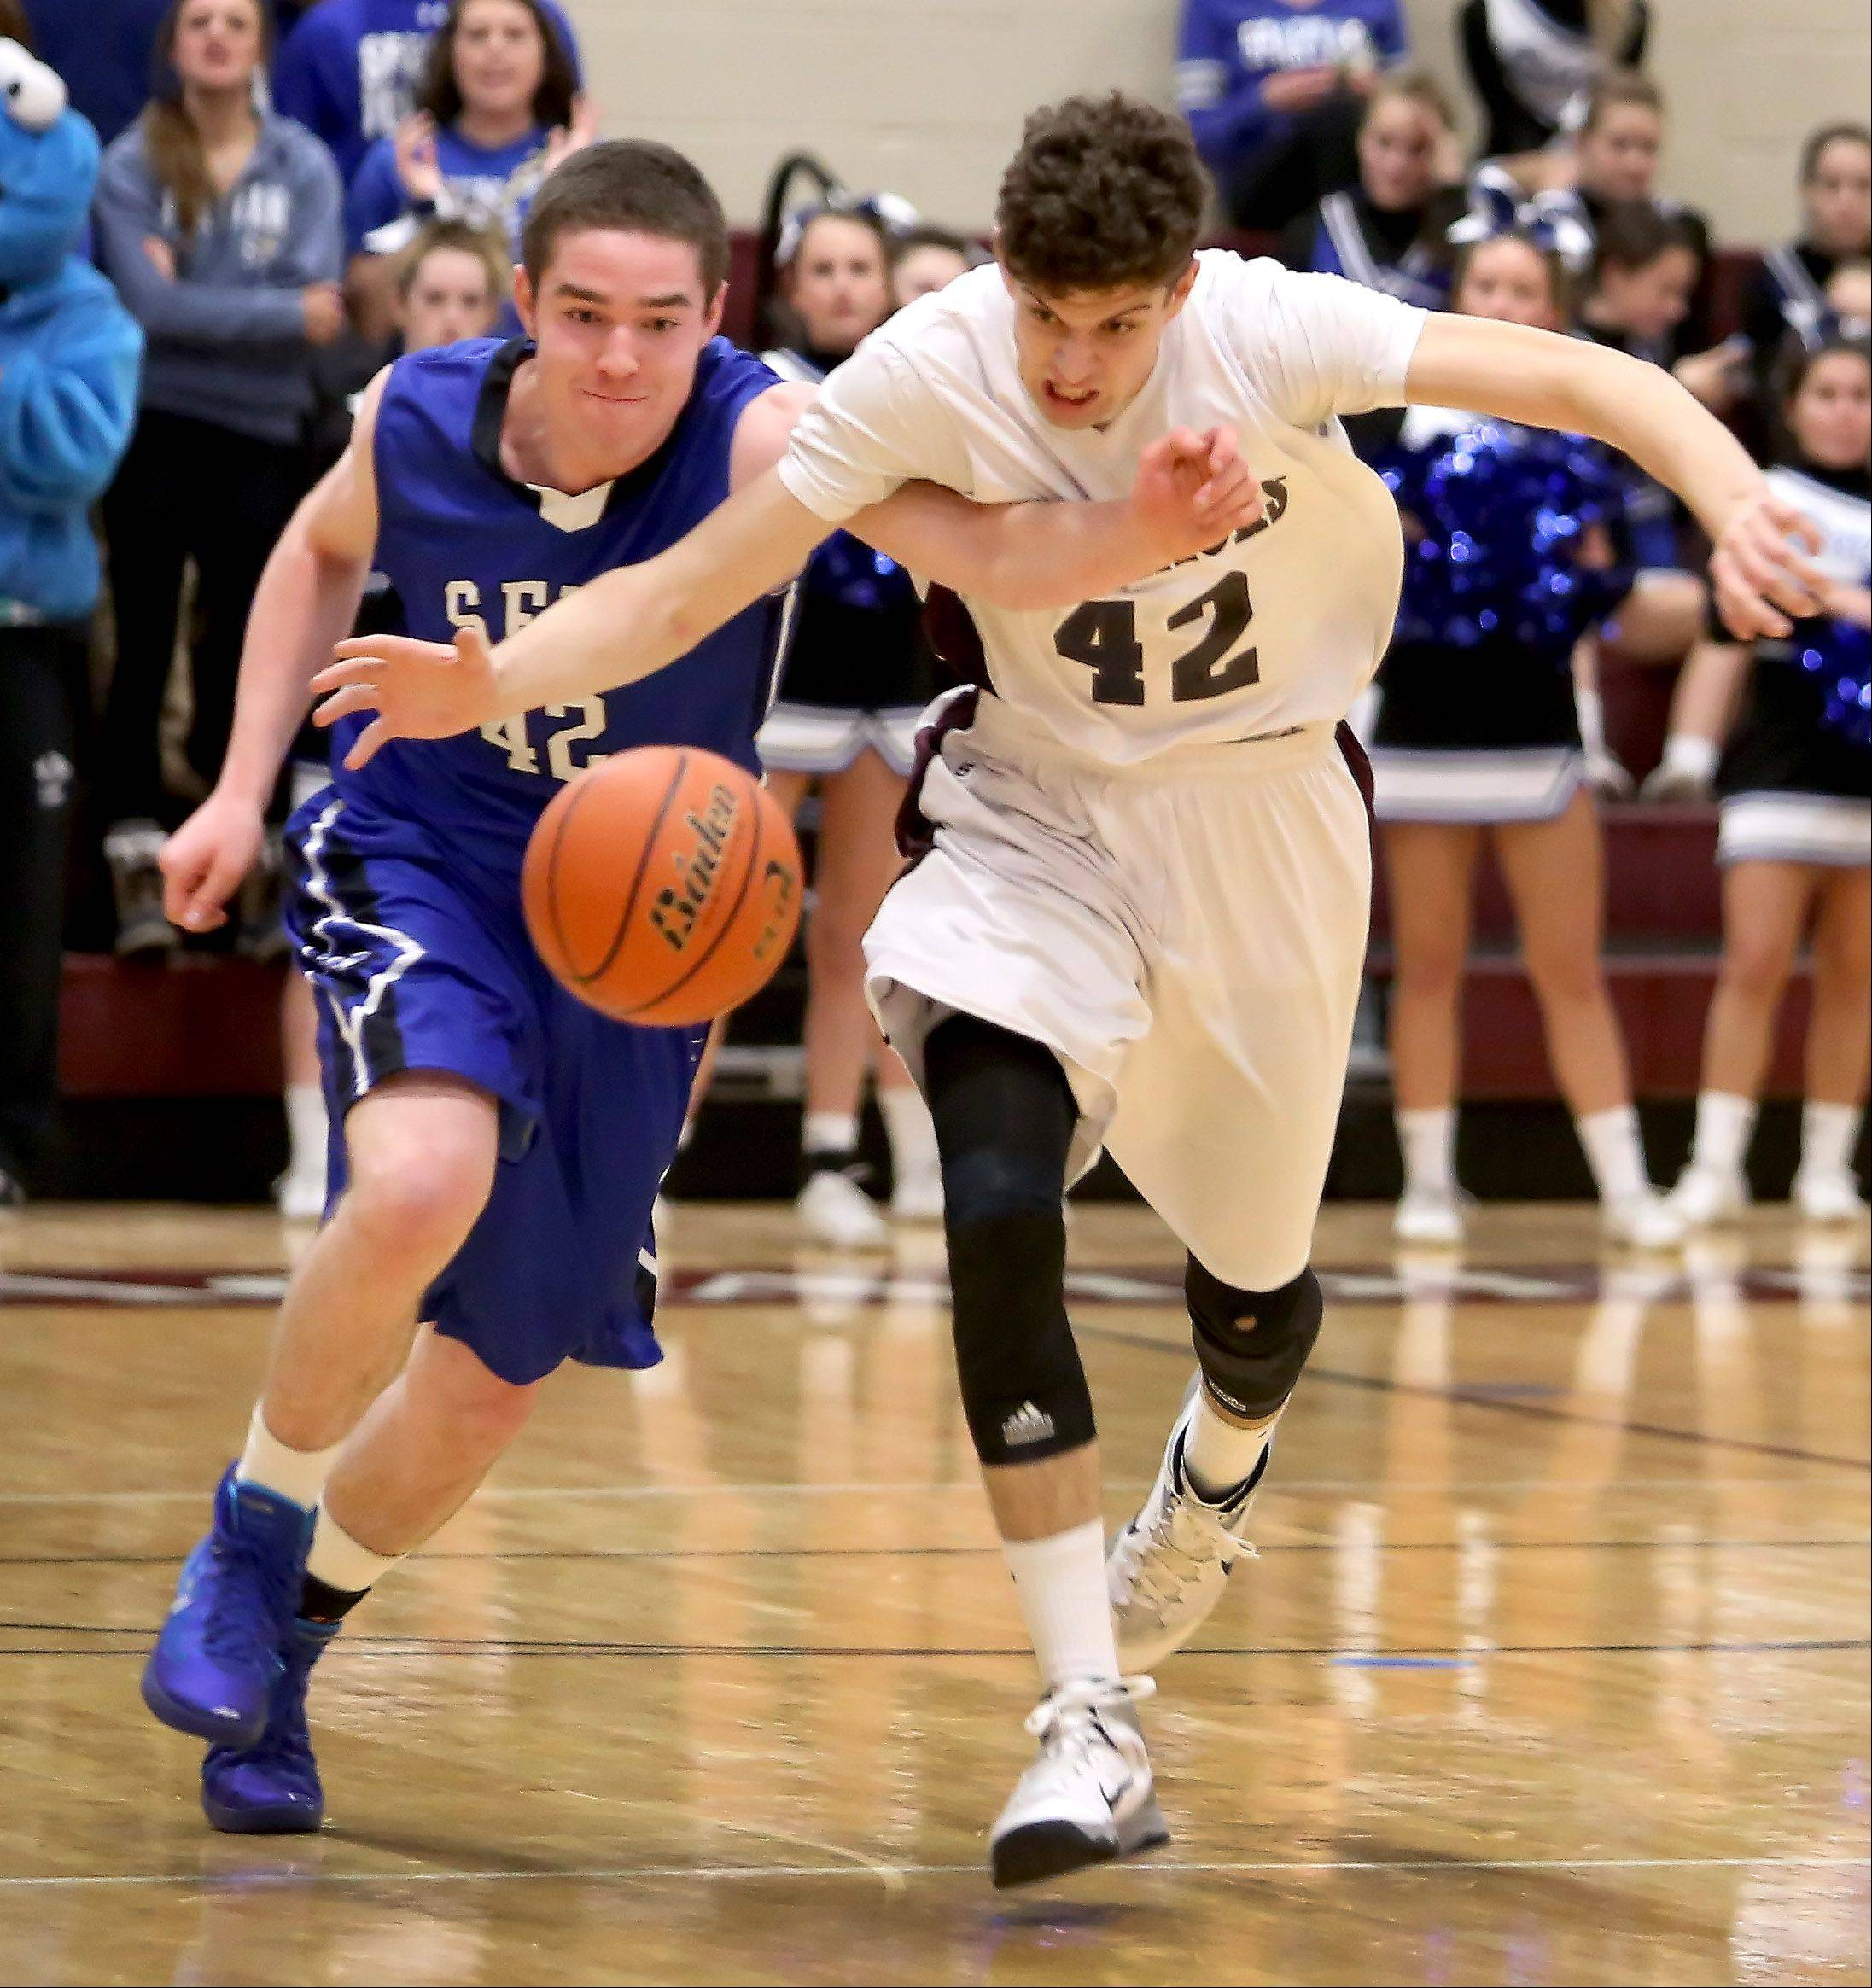 Kilian Brown, left, of St. Francis and Chandler Fuzak, right, of Wheaton Acadamy, chase down a loose ball during boys basketball action in West Chicago on Tuesday.